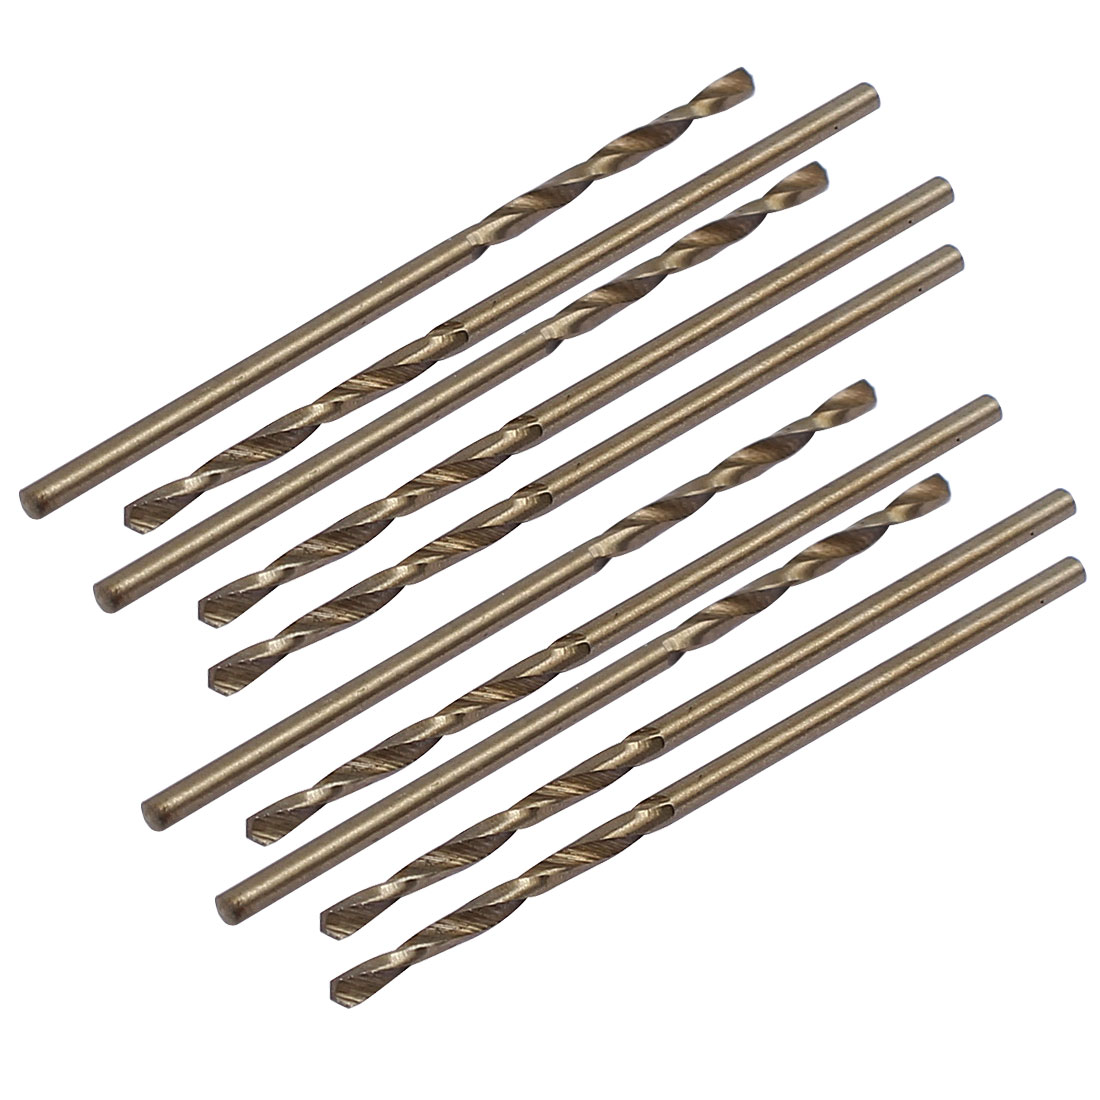 1.4mm Dia Split Point HSS Cobalt Metric Twist Drill Bit Drilling Tool 10pcs